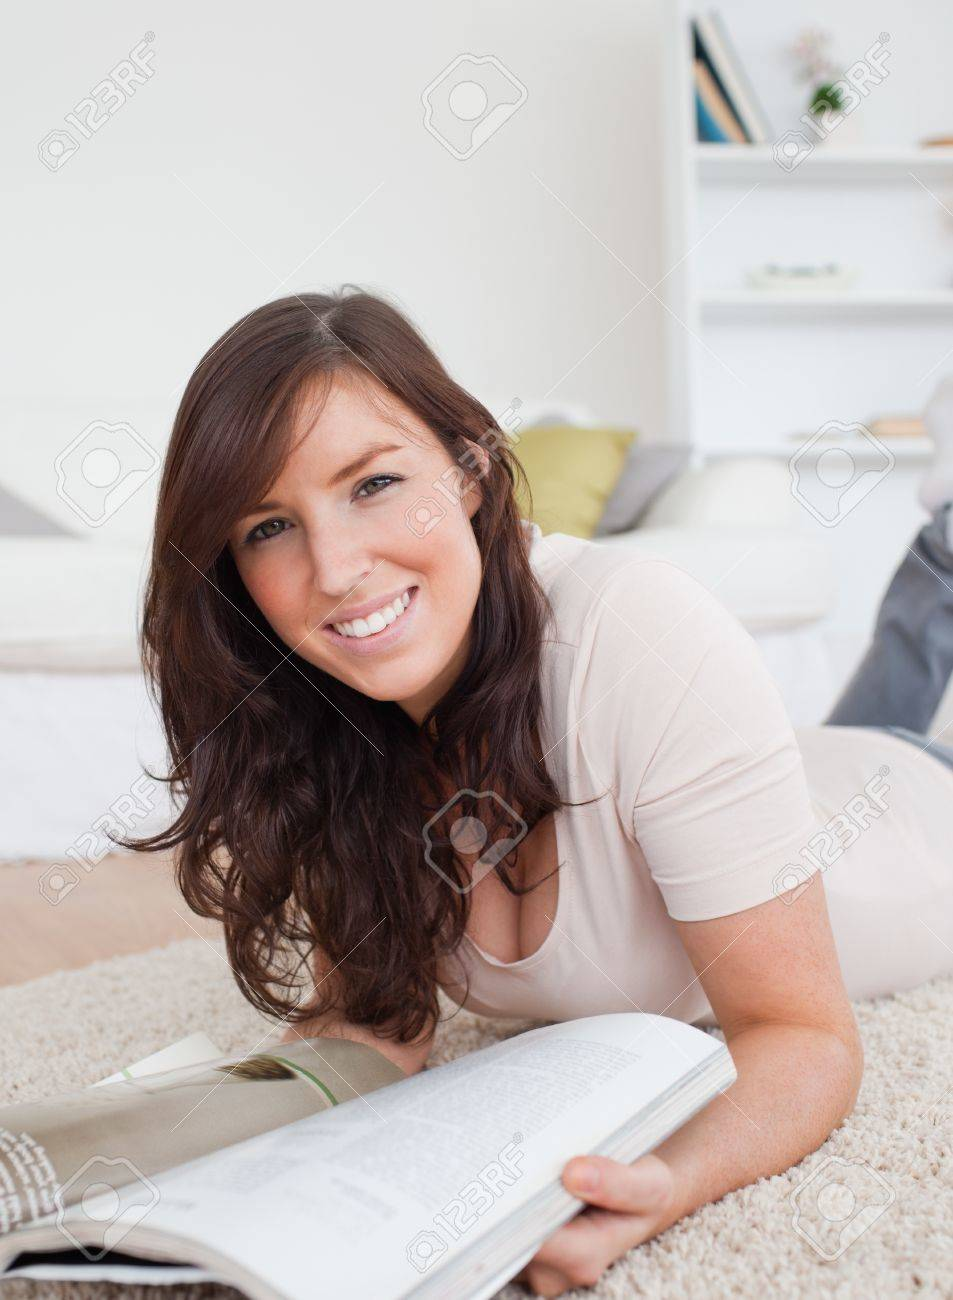 Beautiful woman reading a magazine while lying on a carpet in the living room Stock Photo - 10216237